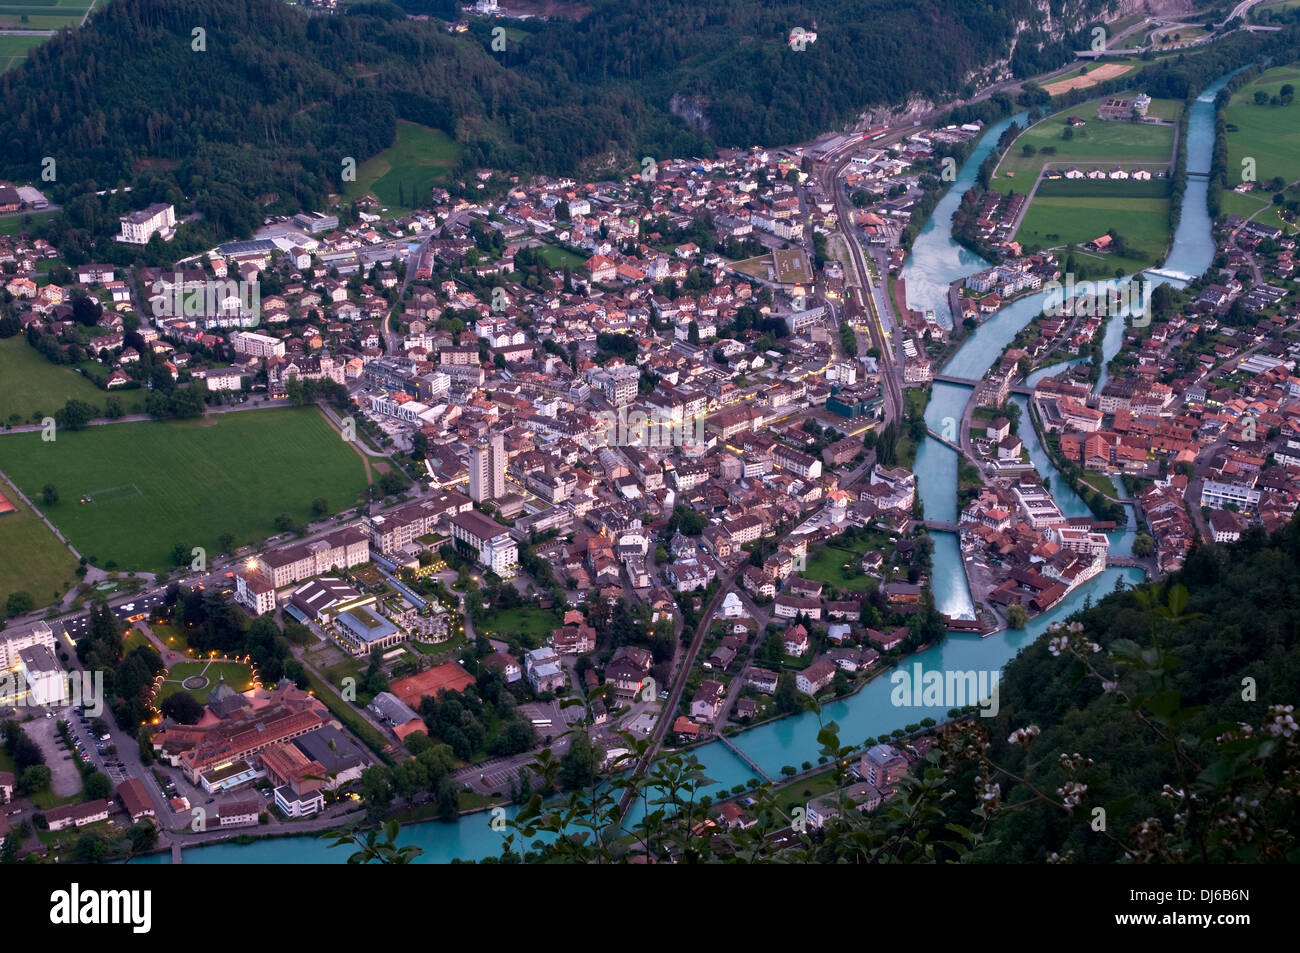 Europe. Switzerland, Canton Bern. Bernese Oberland, Interlaken. Aare, connection between the lakes Brienzersee and Thunersee. - Stock Image